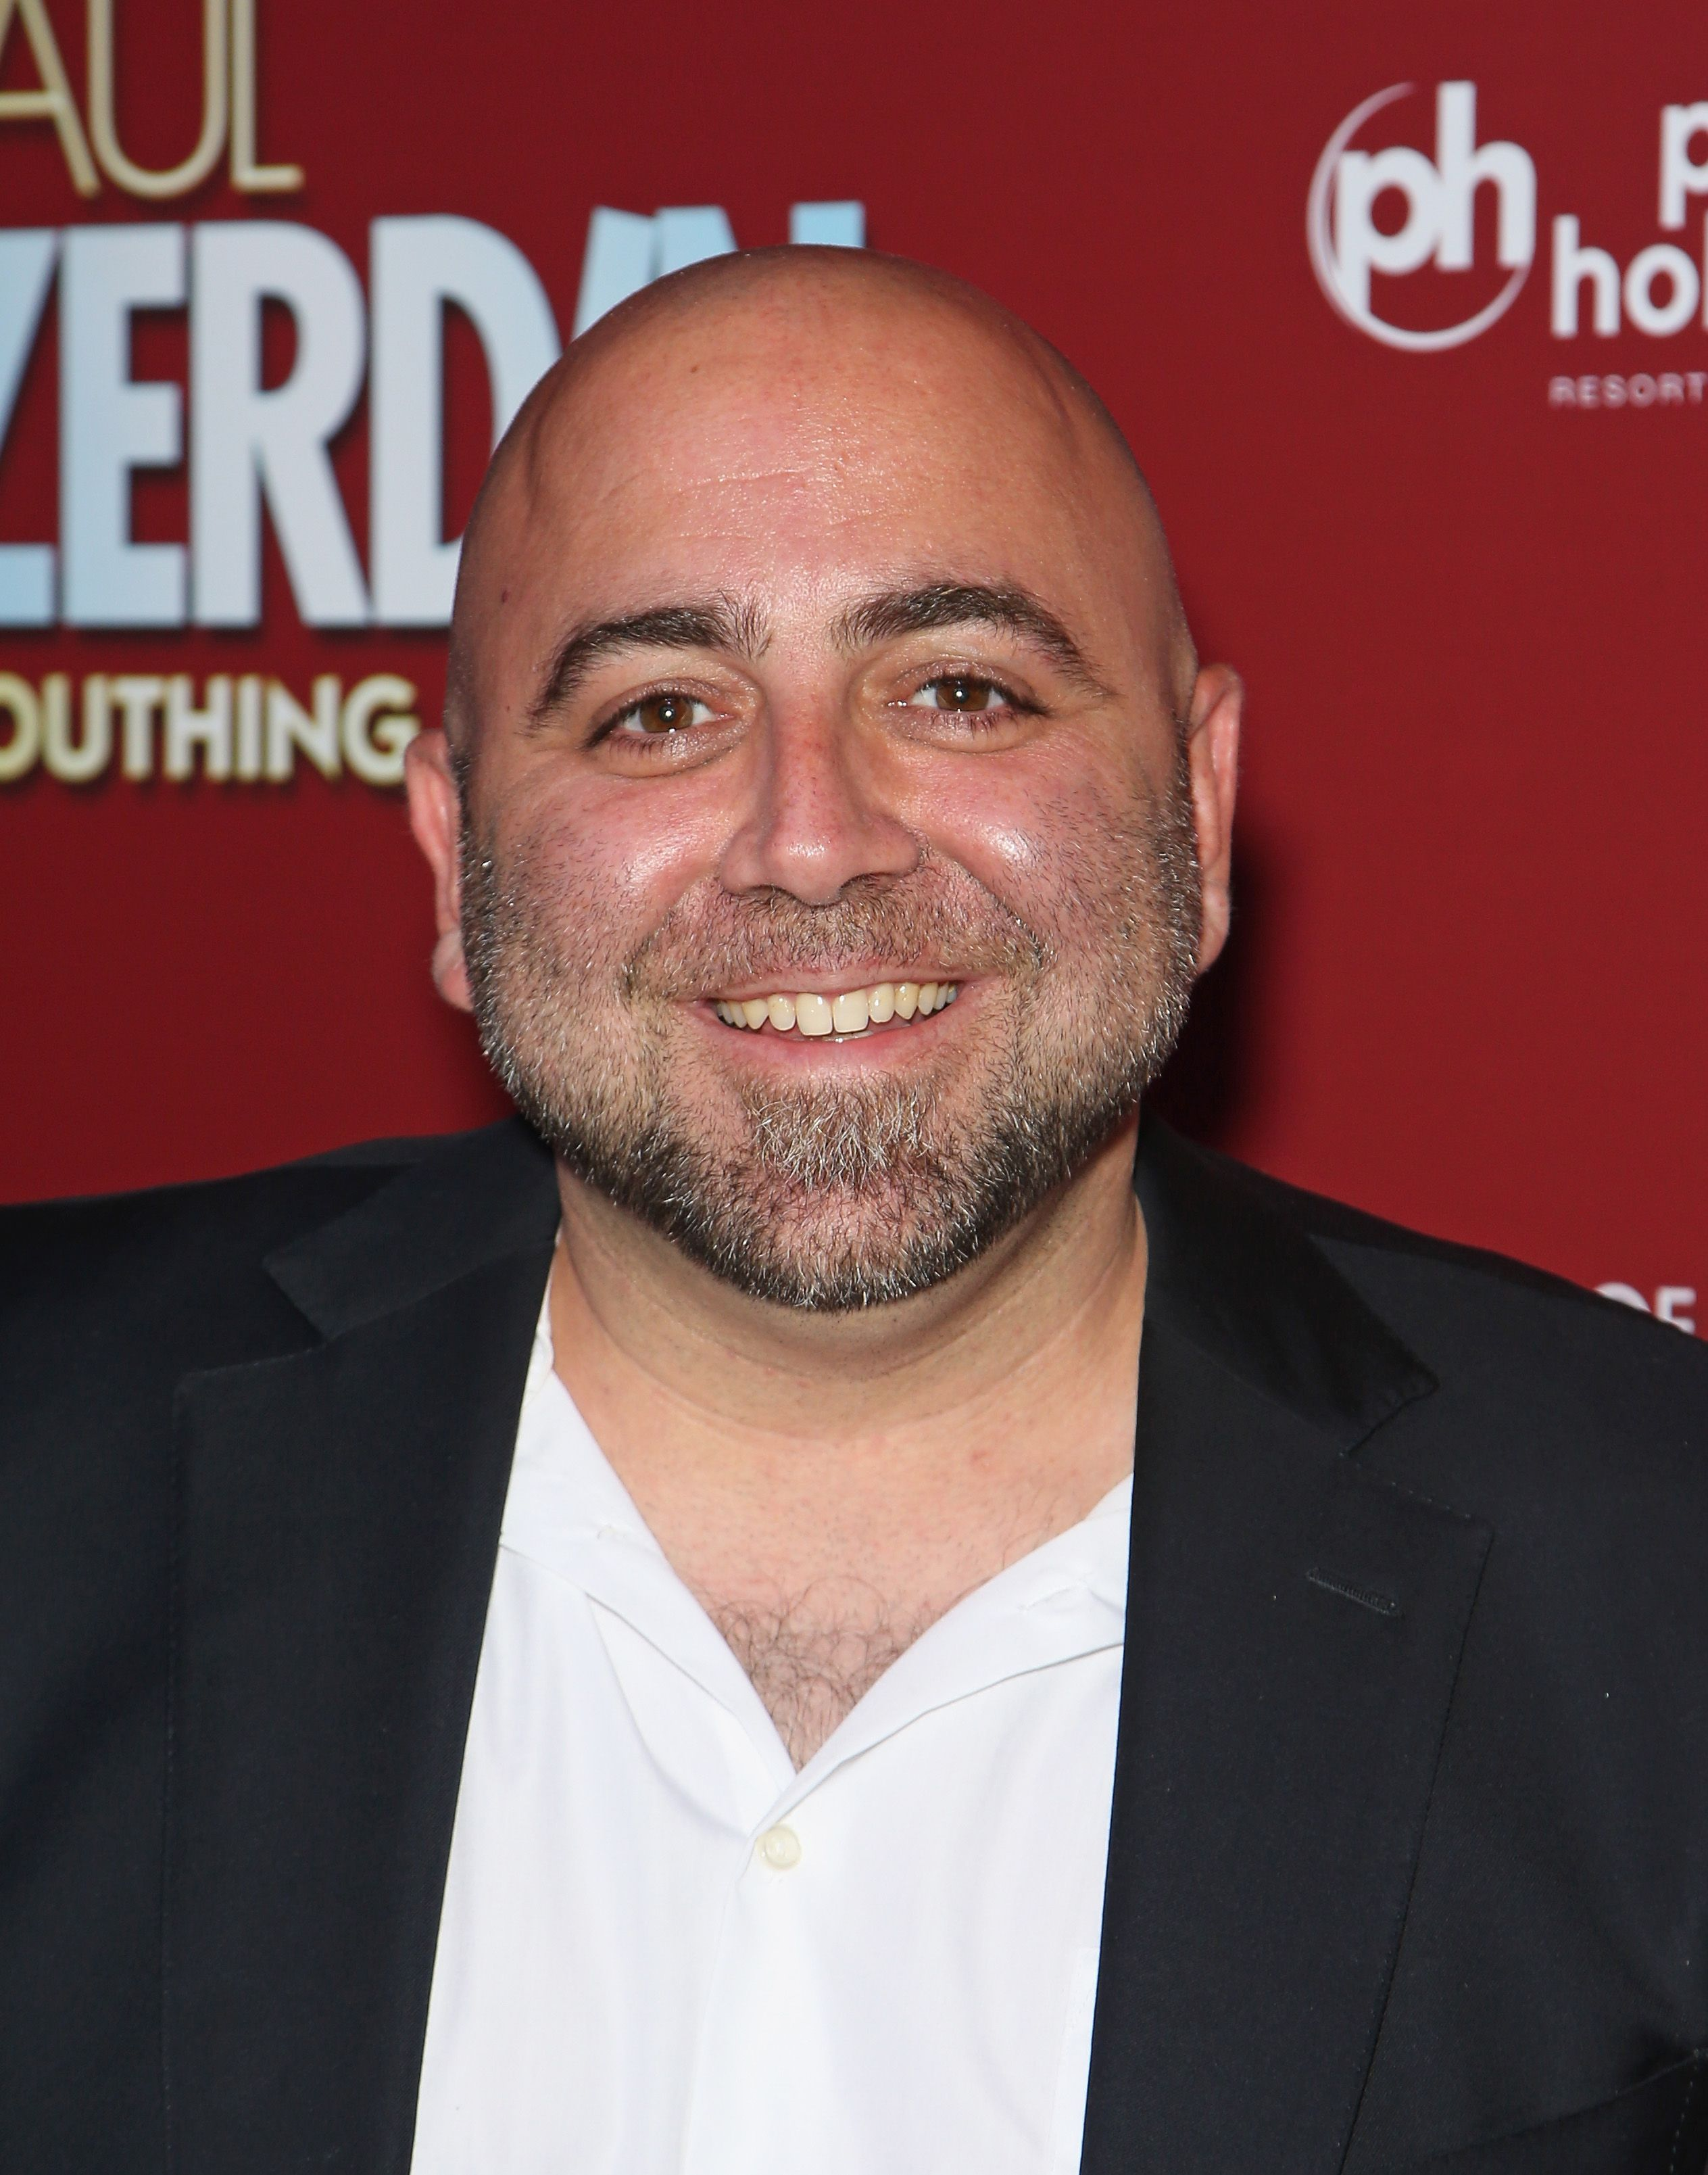 """Duff Goldman at the opening night of """"Paul Zerdin: Mouthing Off"""" in Las Vegas on May 13, 2016 